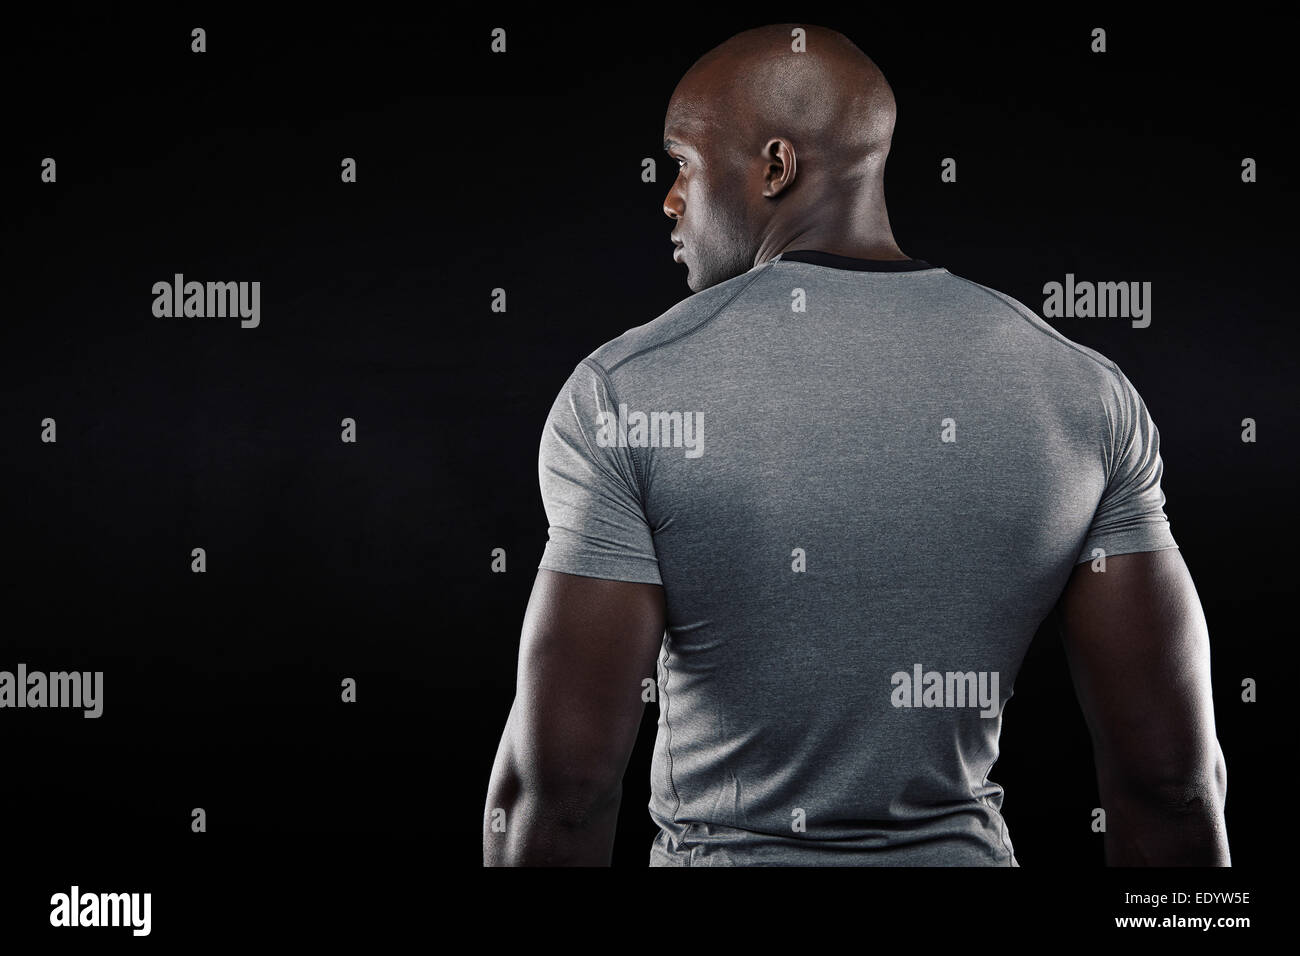 Rear view of fit young man with muscular build standing against black background. Afro American fitness model in - Stock Image